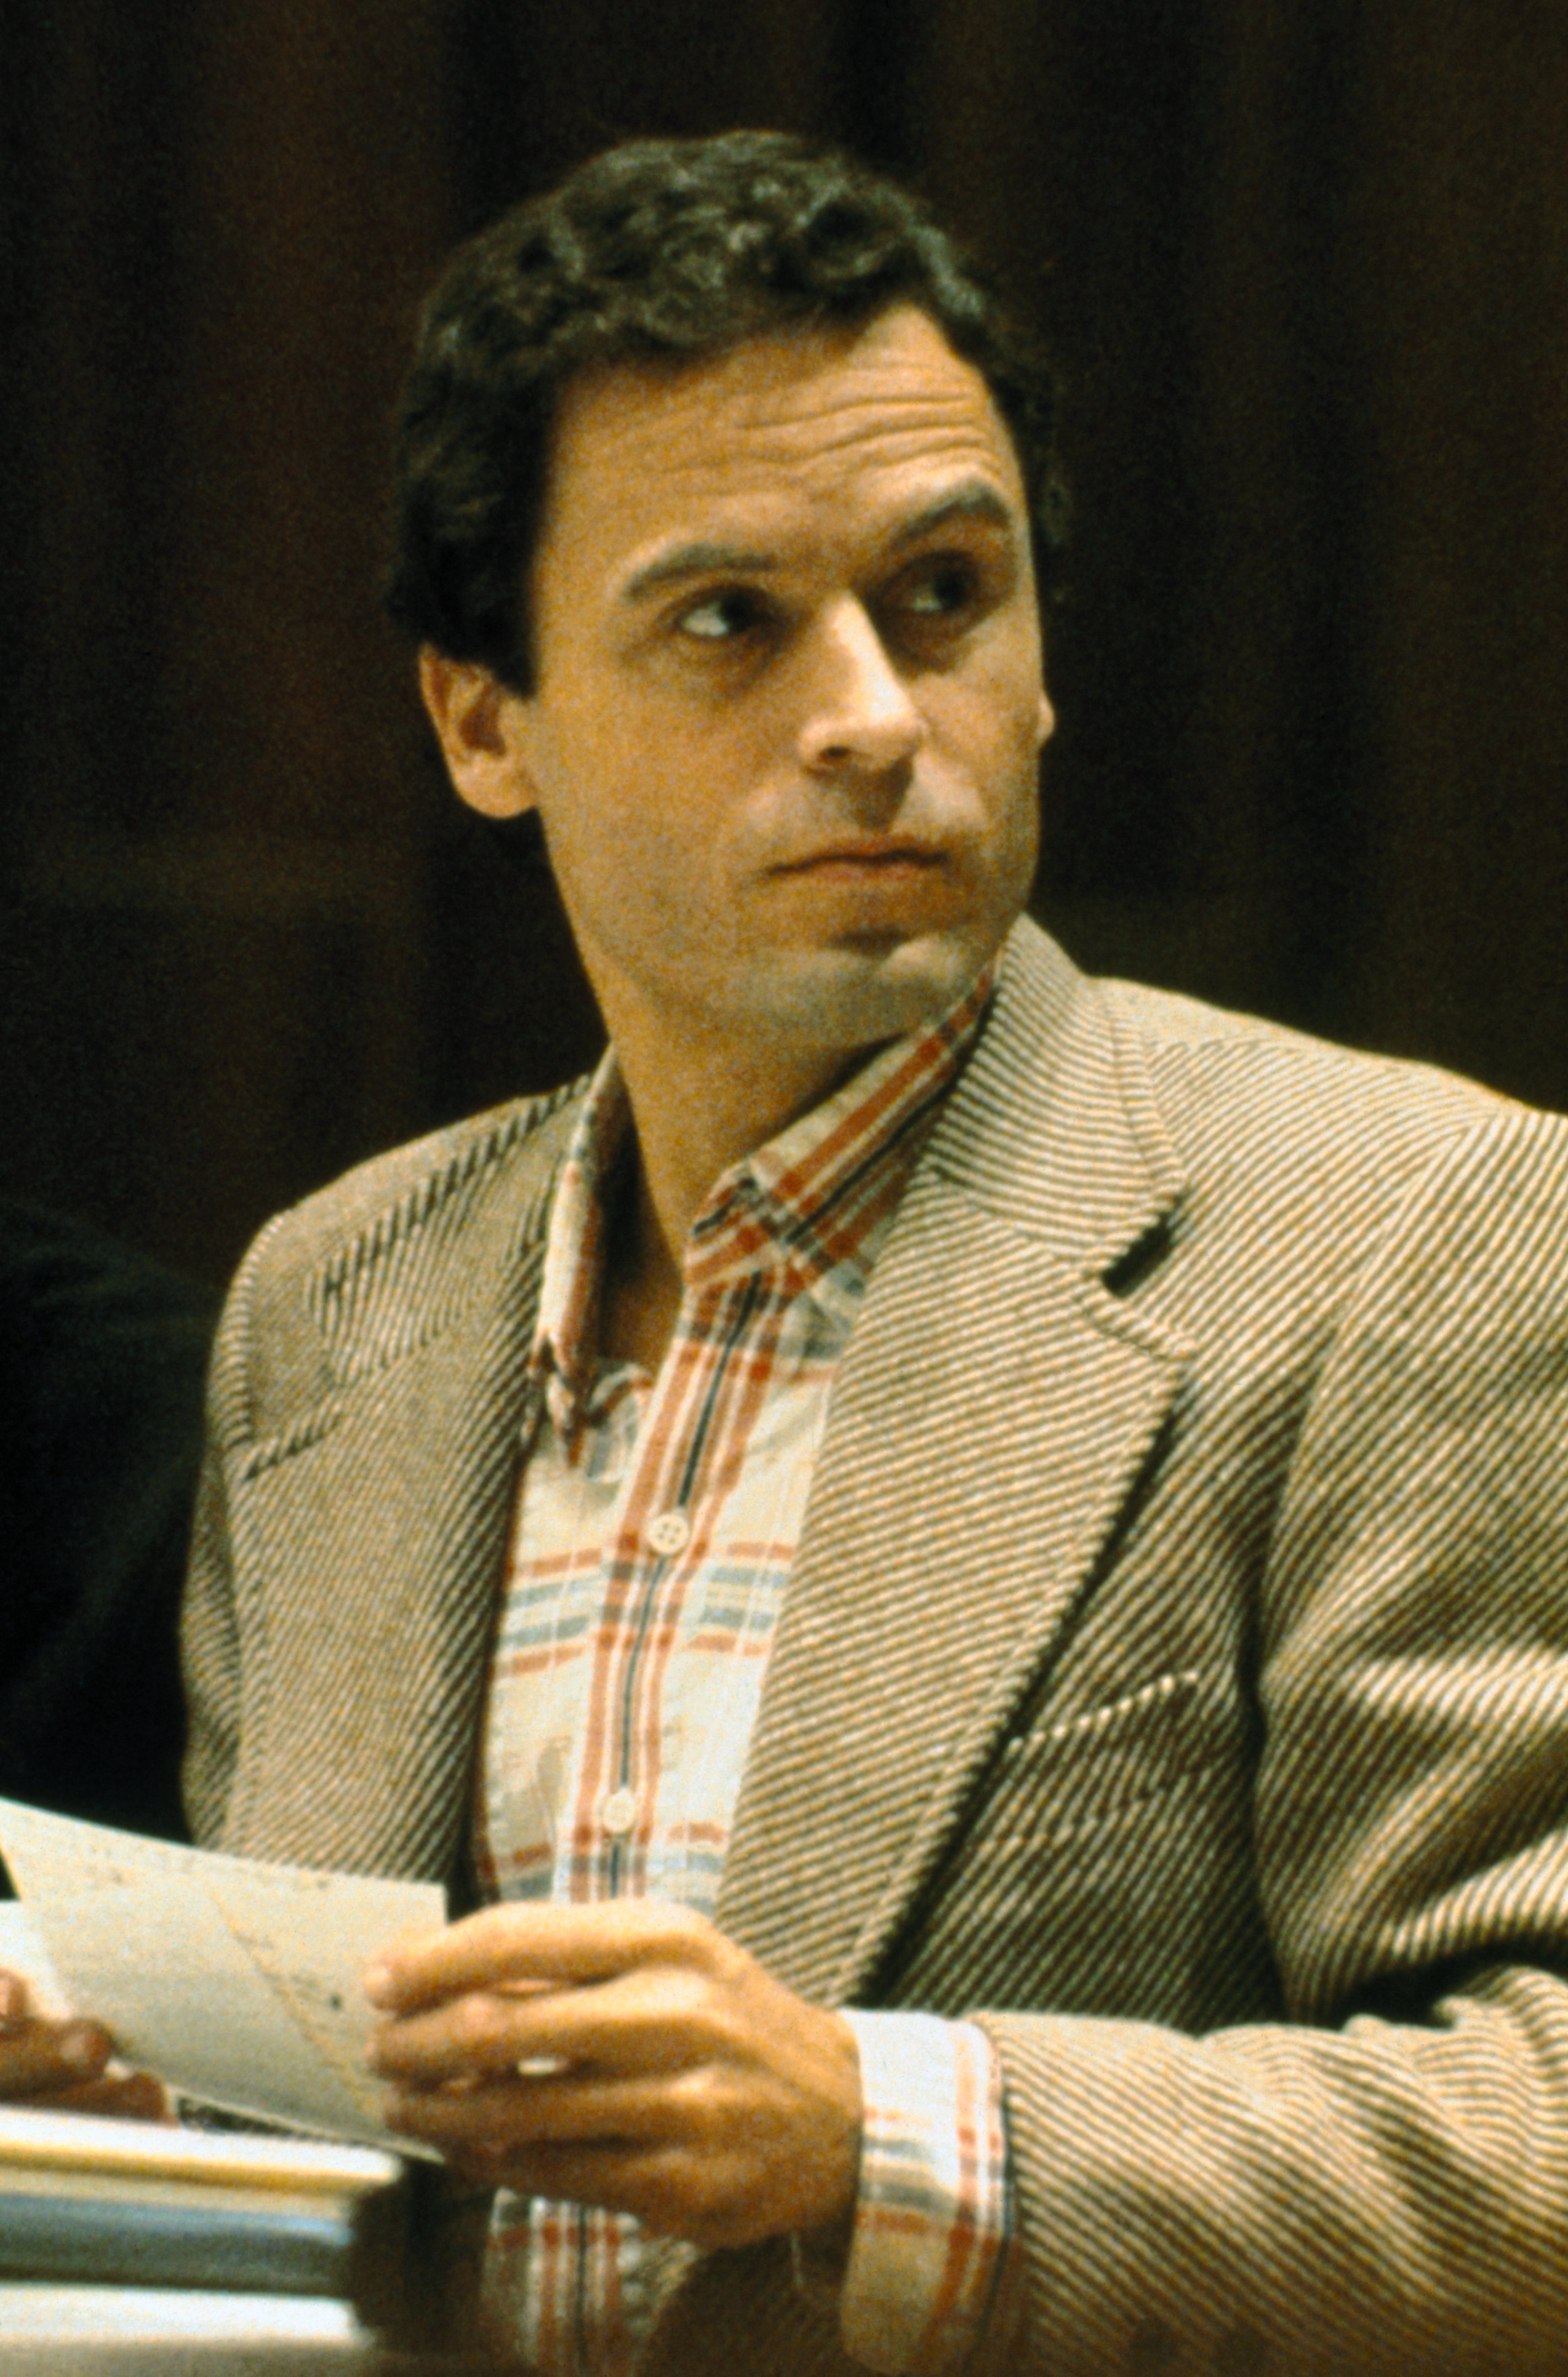 Close up of Theodore Bundy, convicted Florida murderer, charged with other killings.  Source: Getty Images